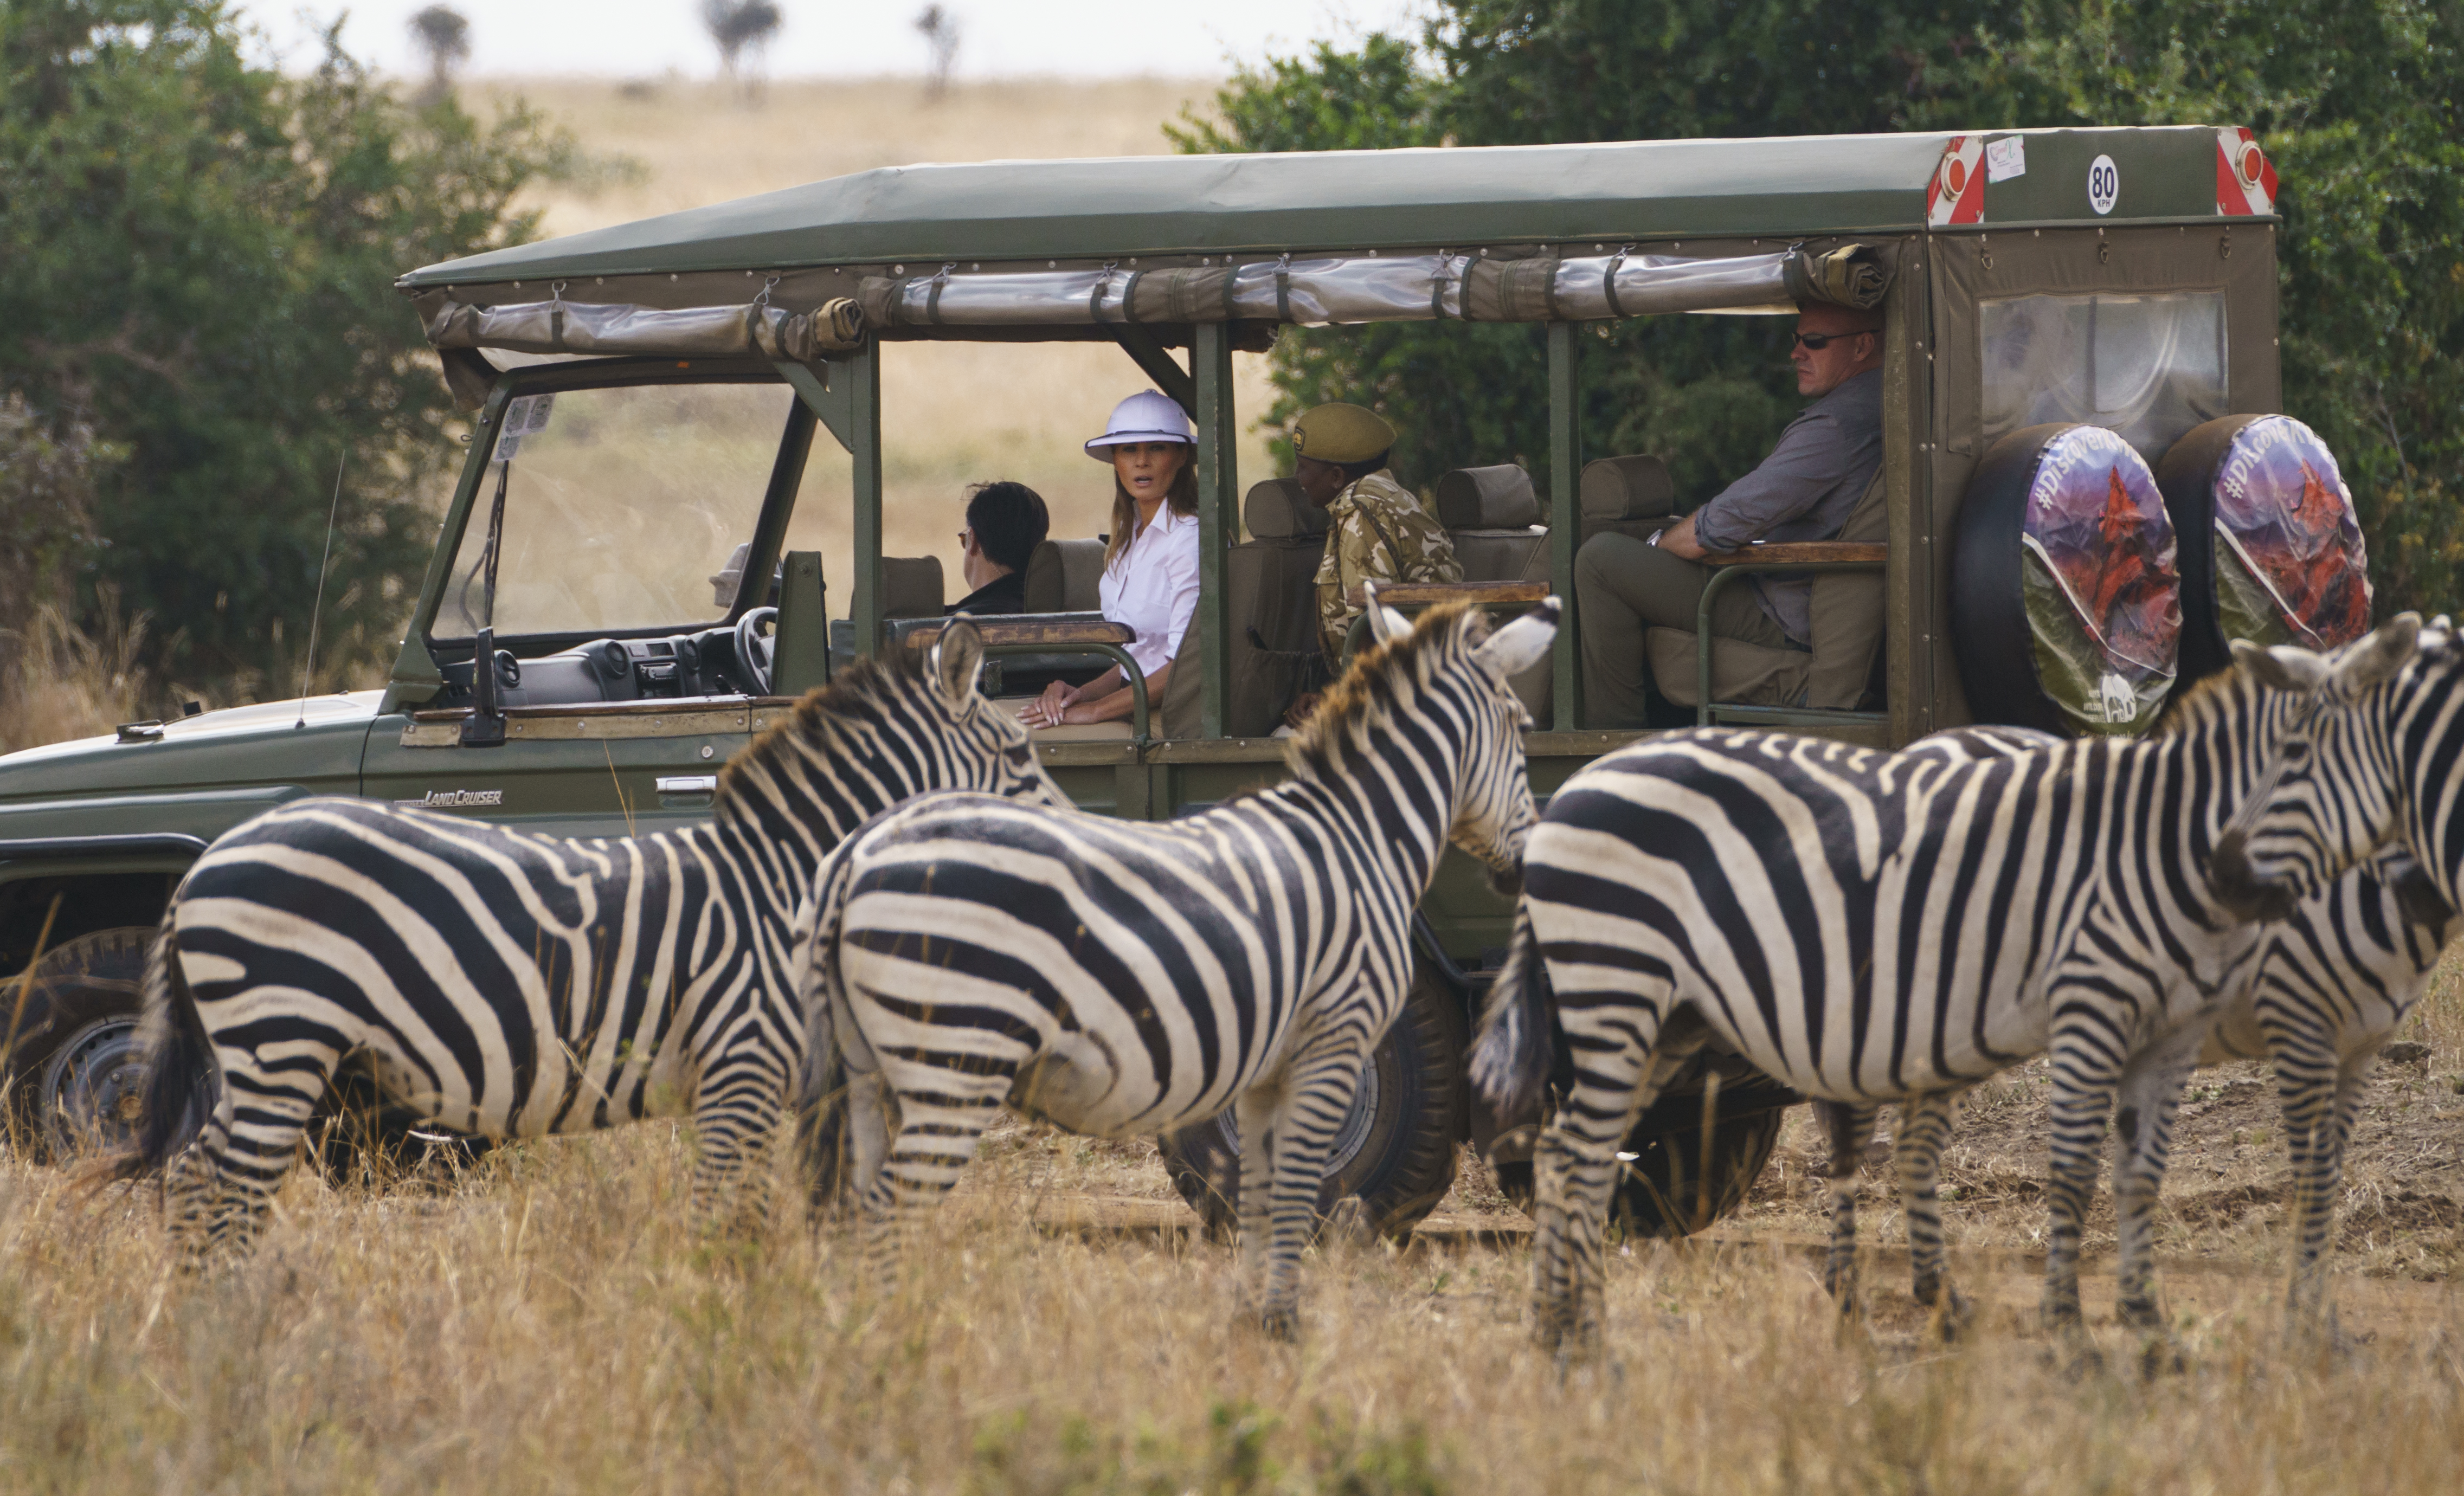 First lady Melania Trump observes zebras during a safari at Nairobi National Park in Nairobi, Kenya, Friday, Oct. 5, 2018. First lady Melania Trump is visiting Africa on her first big solo international trip, aiming to make child well-being the focus of a five-day, four-country tour. (AP Photo/Carolyn Kaster)